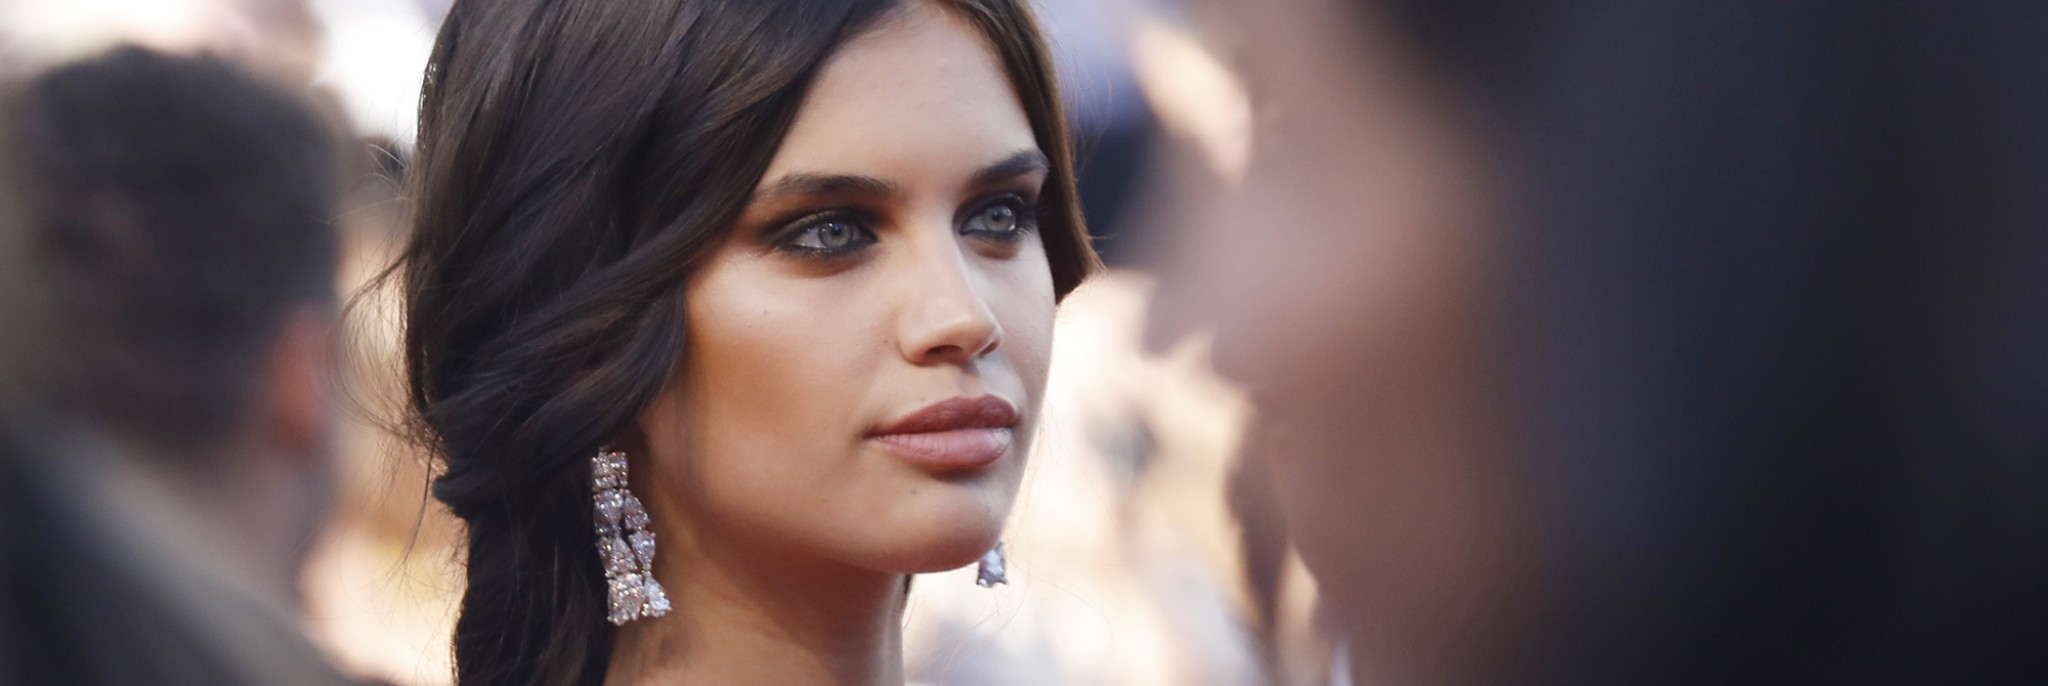 Cannes 2017: All the Best Beauty Looks From Opening Night